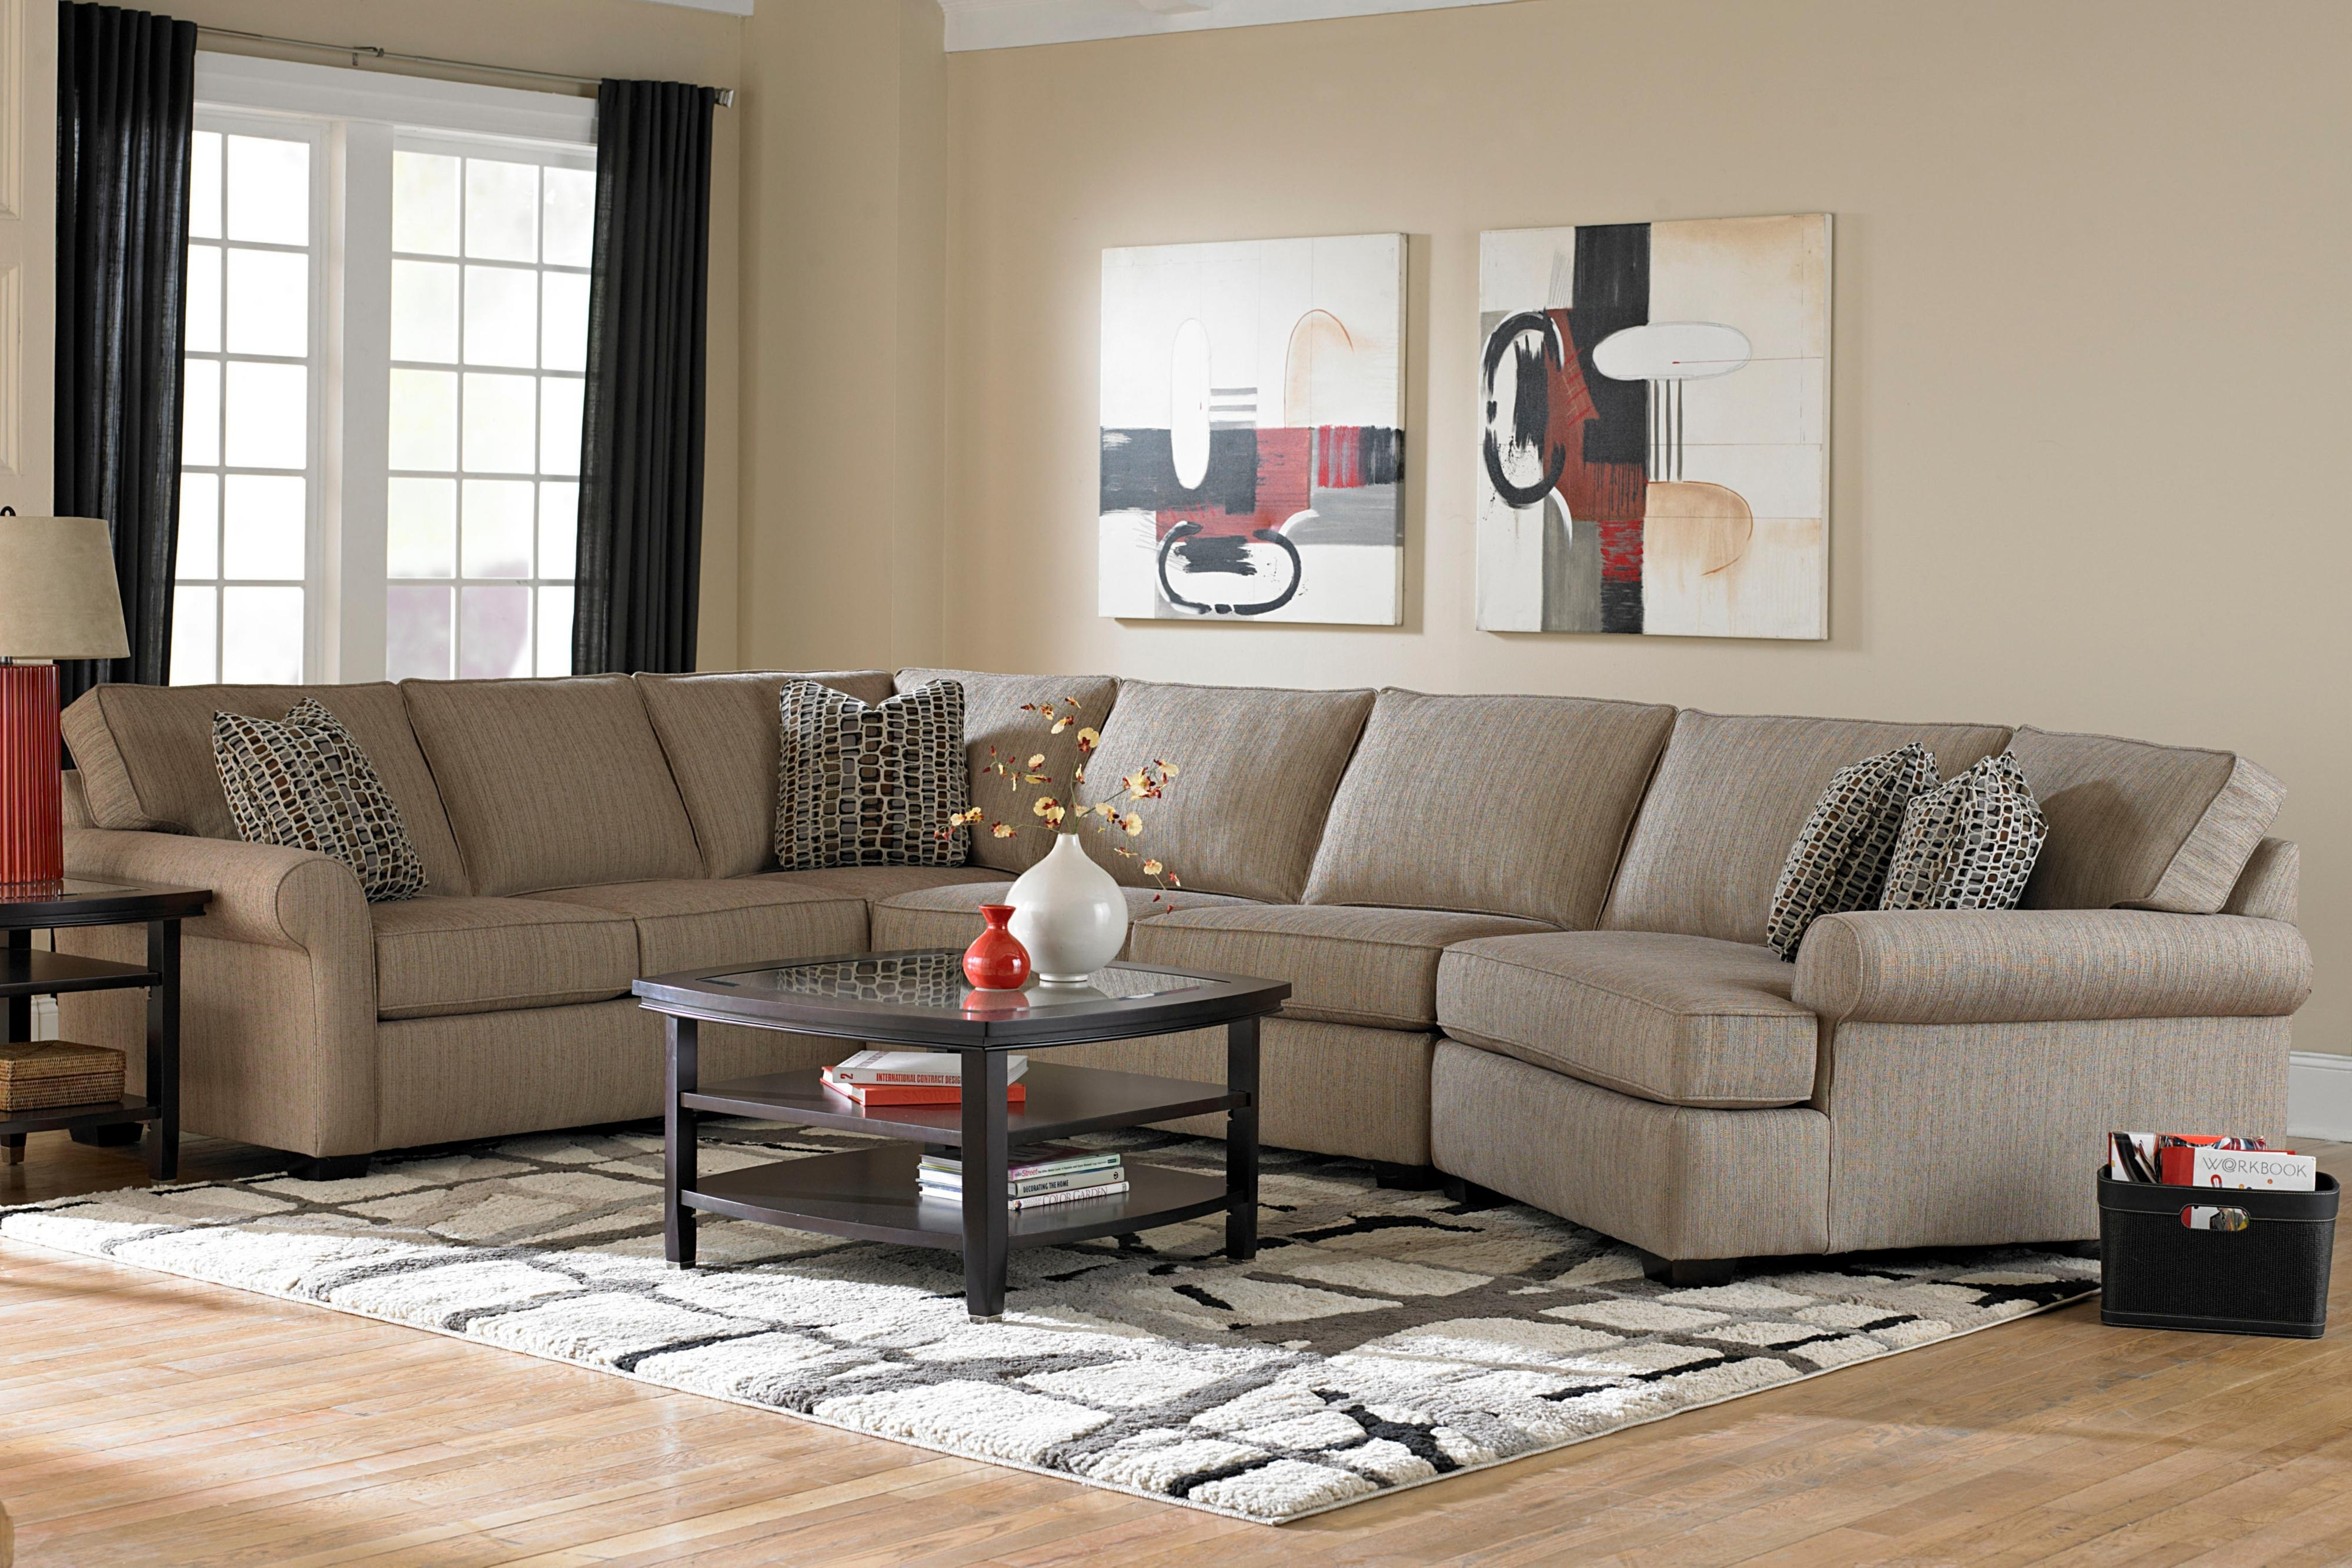 Broyhill Furniture Ethan Transitional Sectional Sofa With Right Pertaining To Sectional Sofas At Broyhill (View 2 of 15)